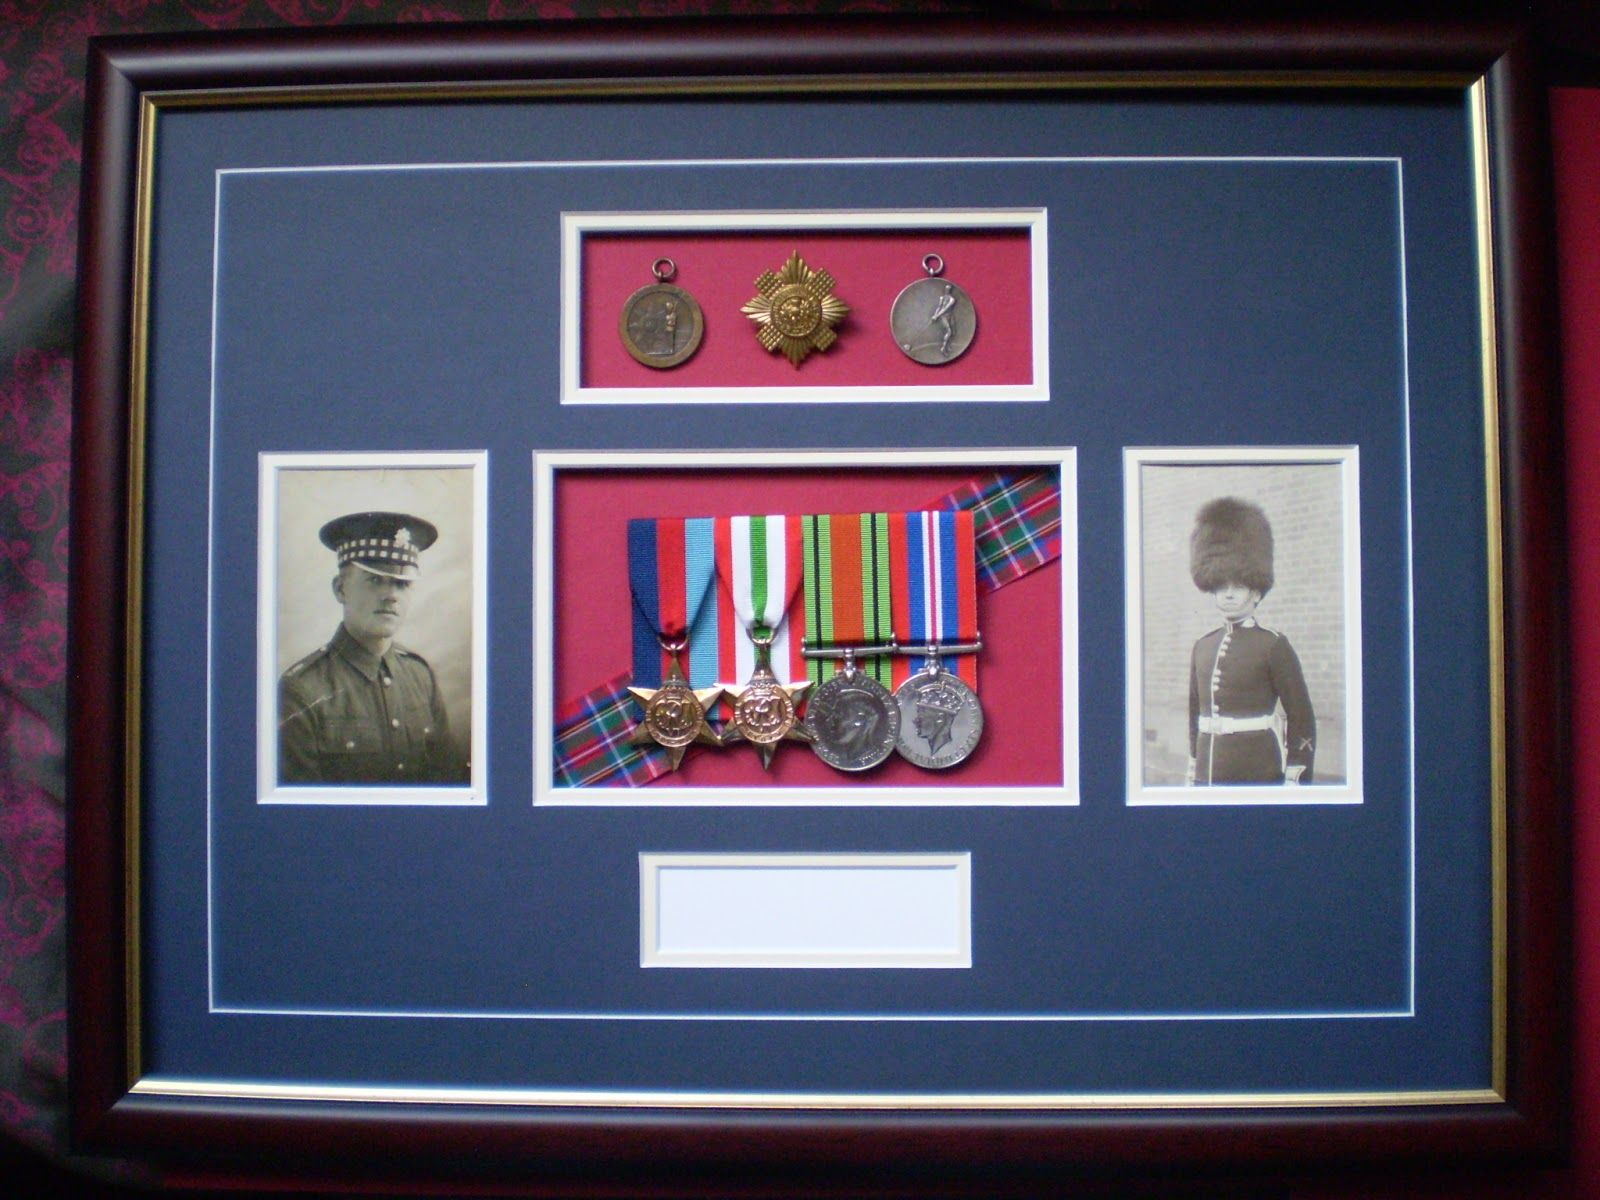 Military Medal Mounting And Framing Australia Medal Display Diy Military Shadow Box Medal Display